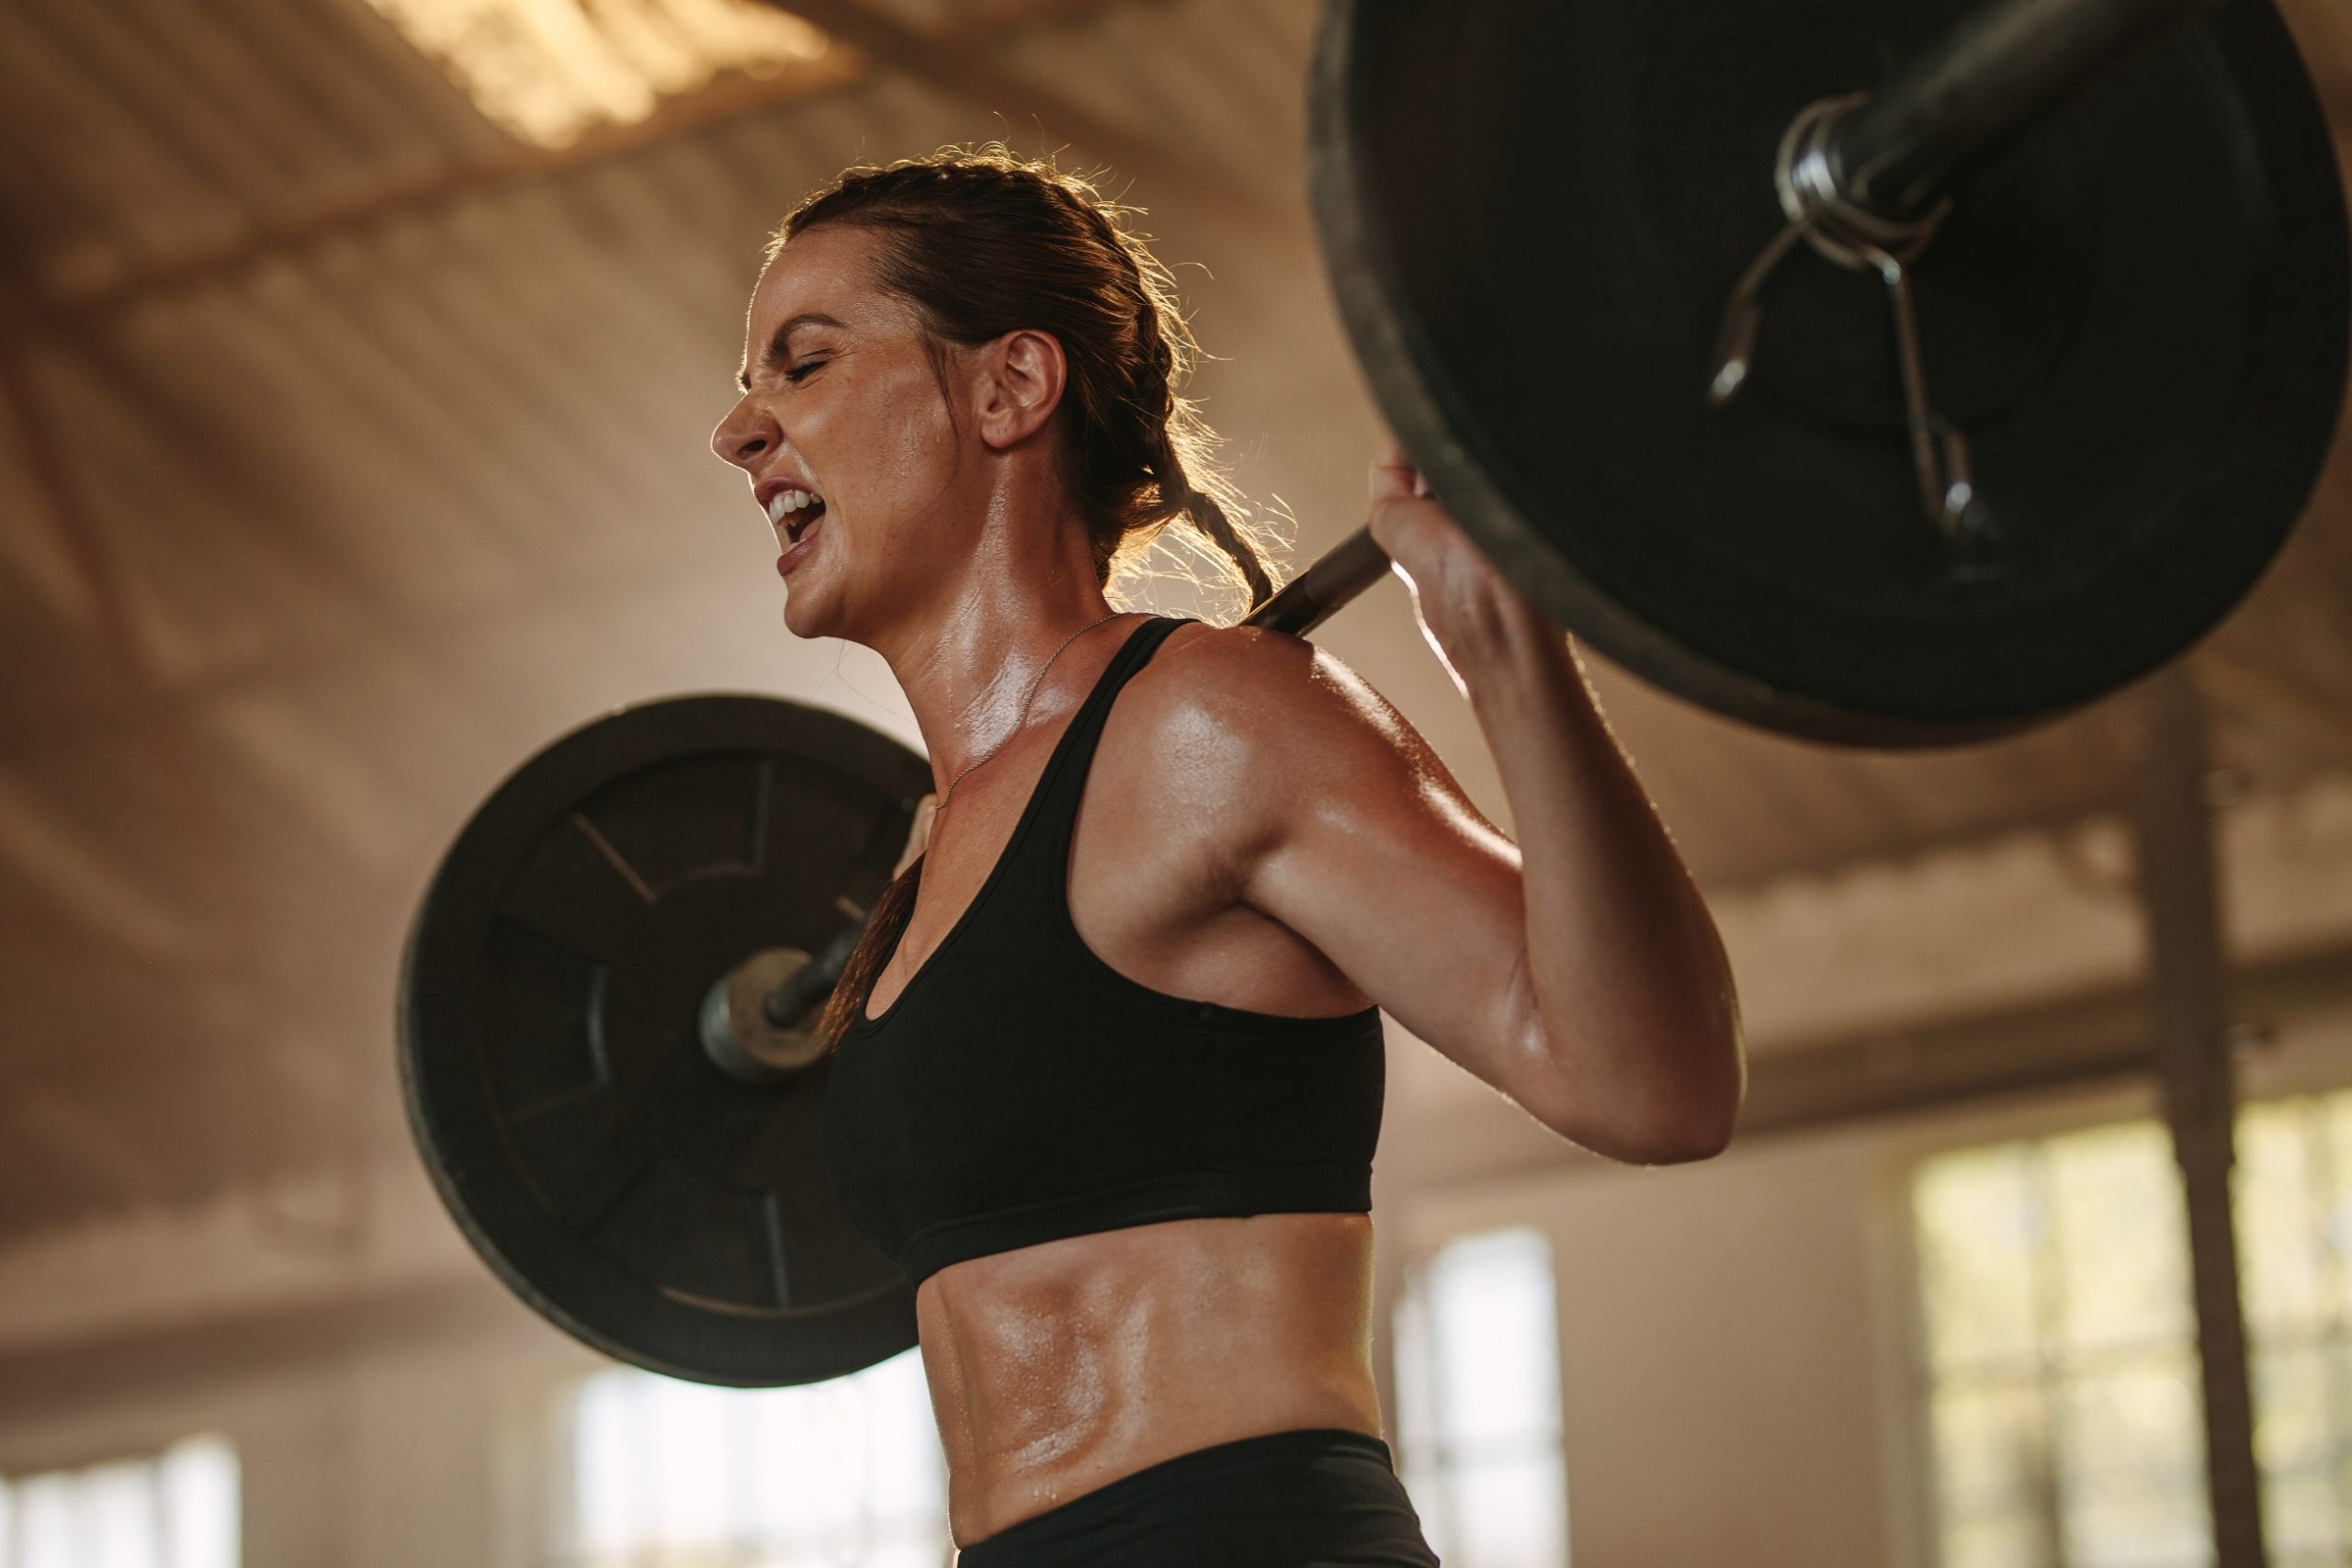 Squat training high repetitions predict muscle fiber type